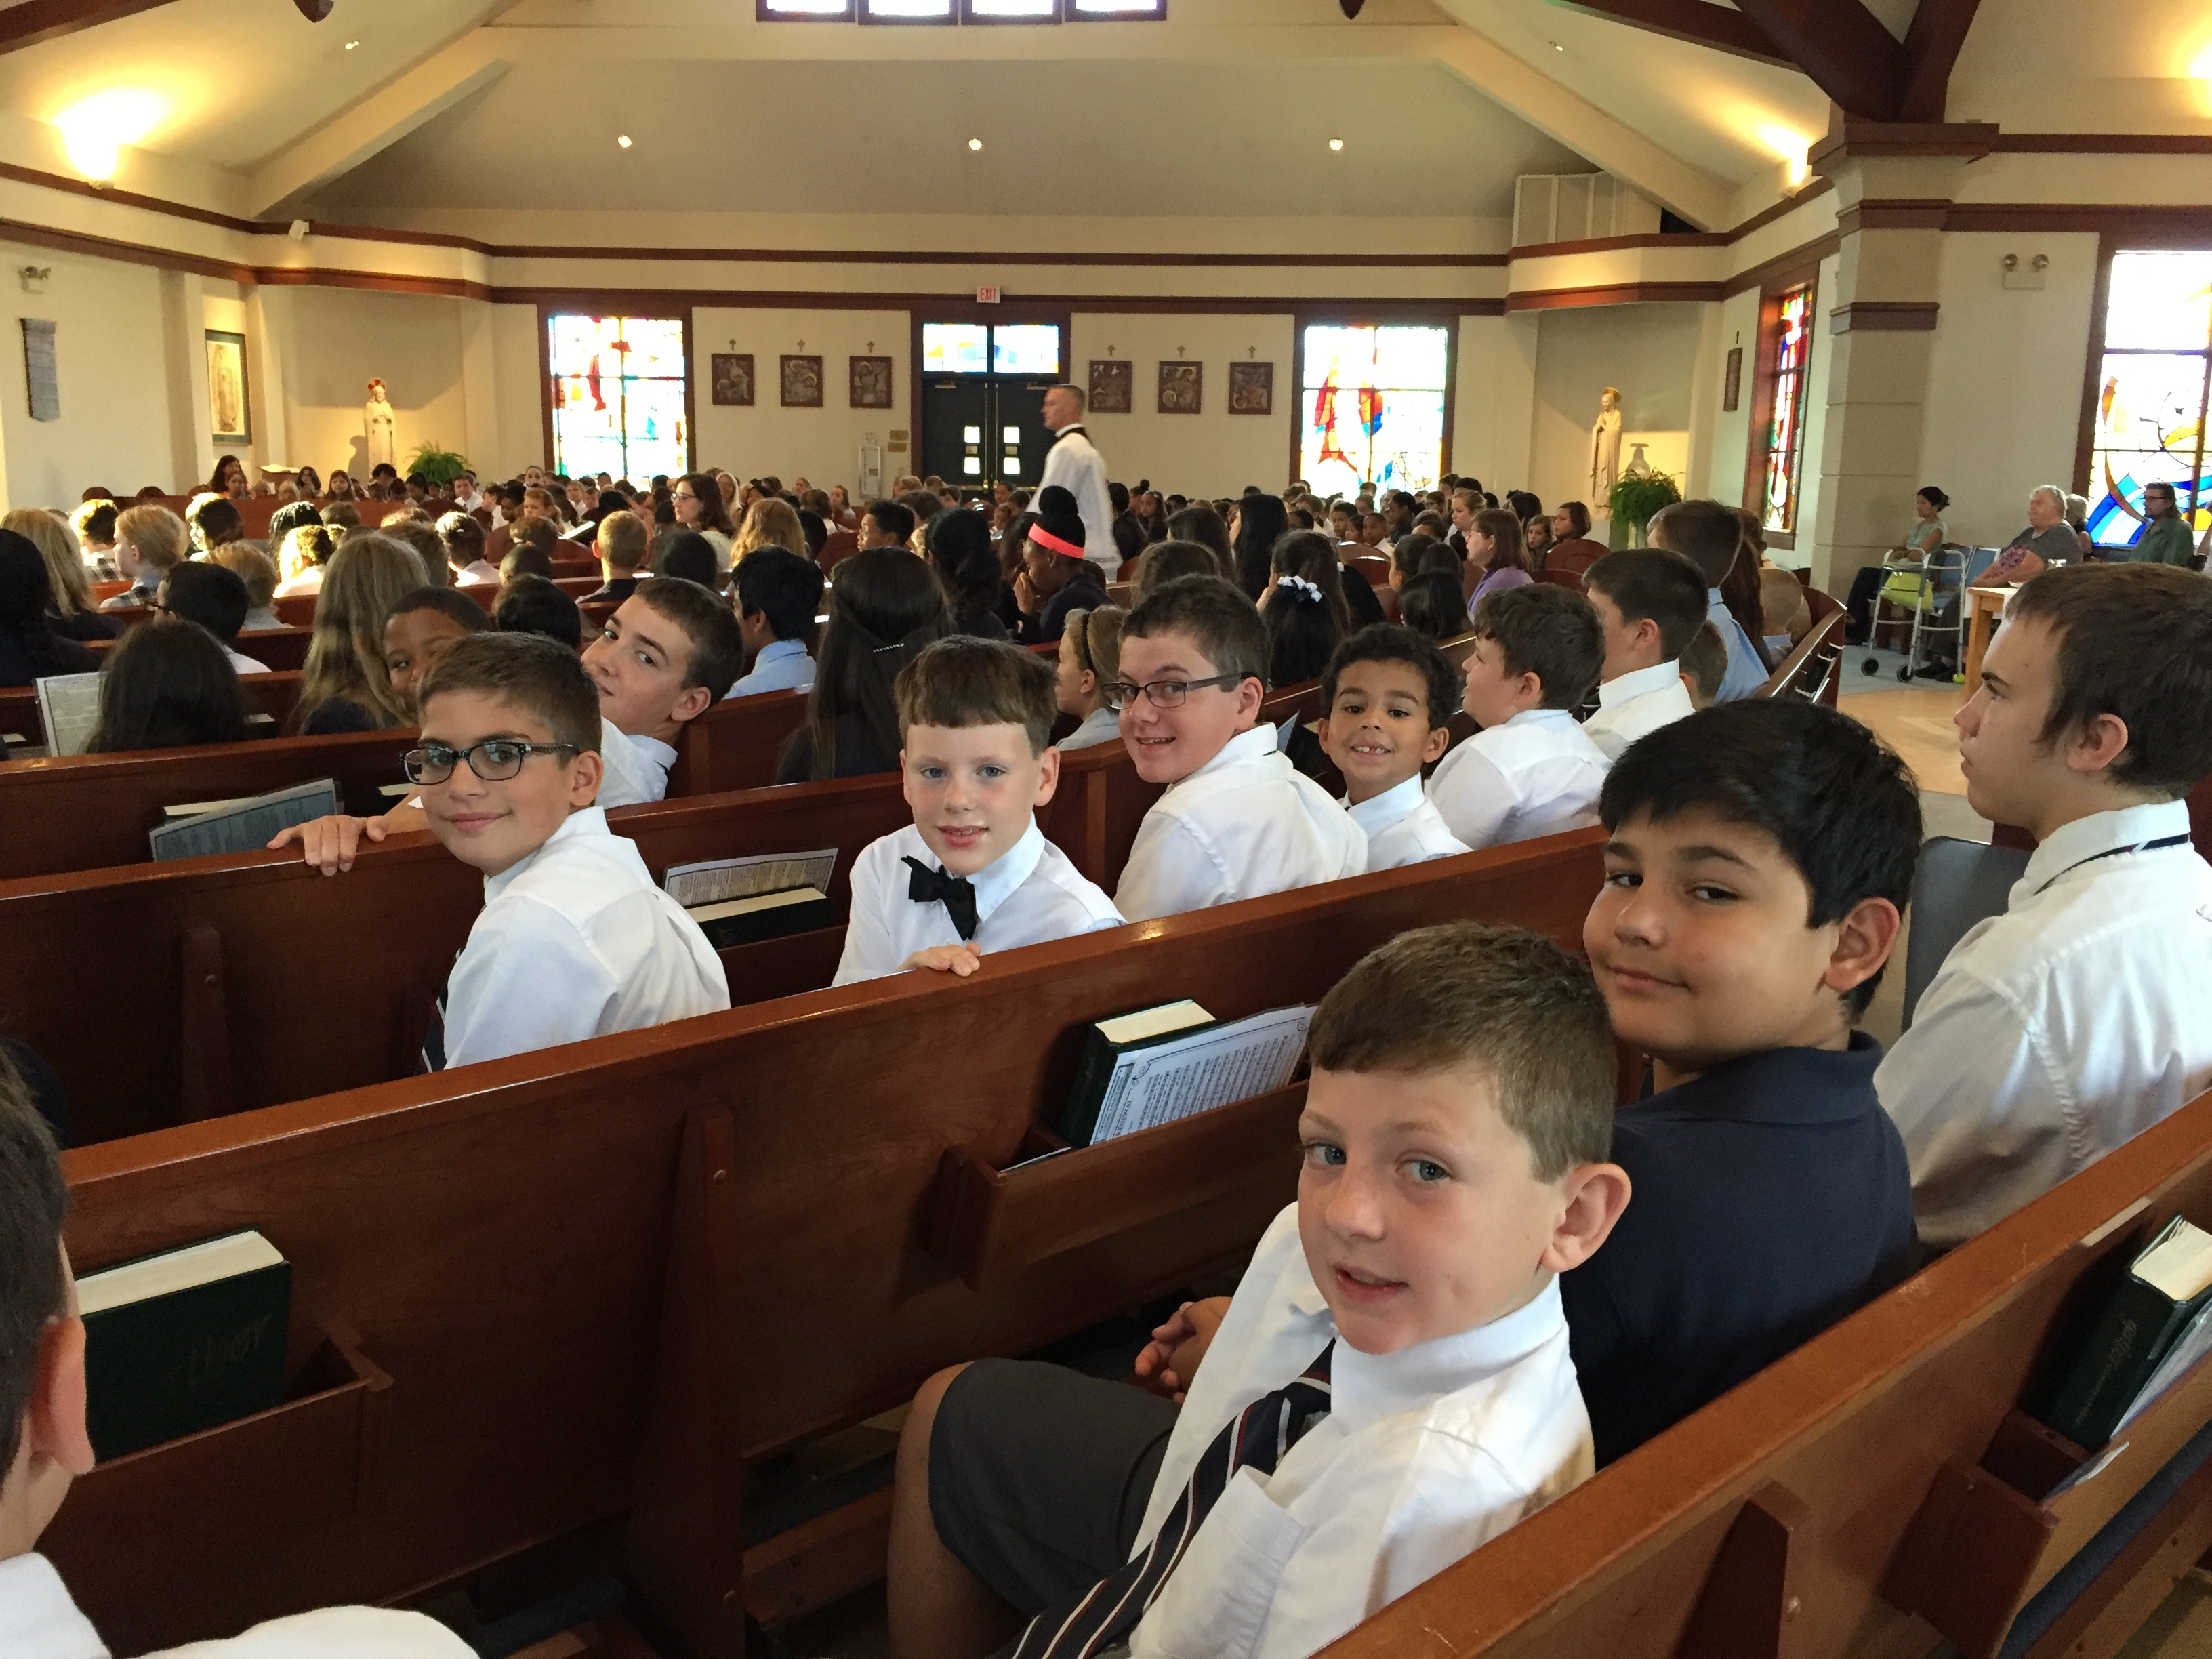 Boys-at-Mass